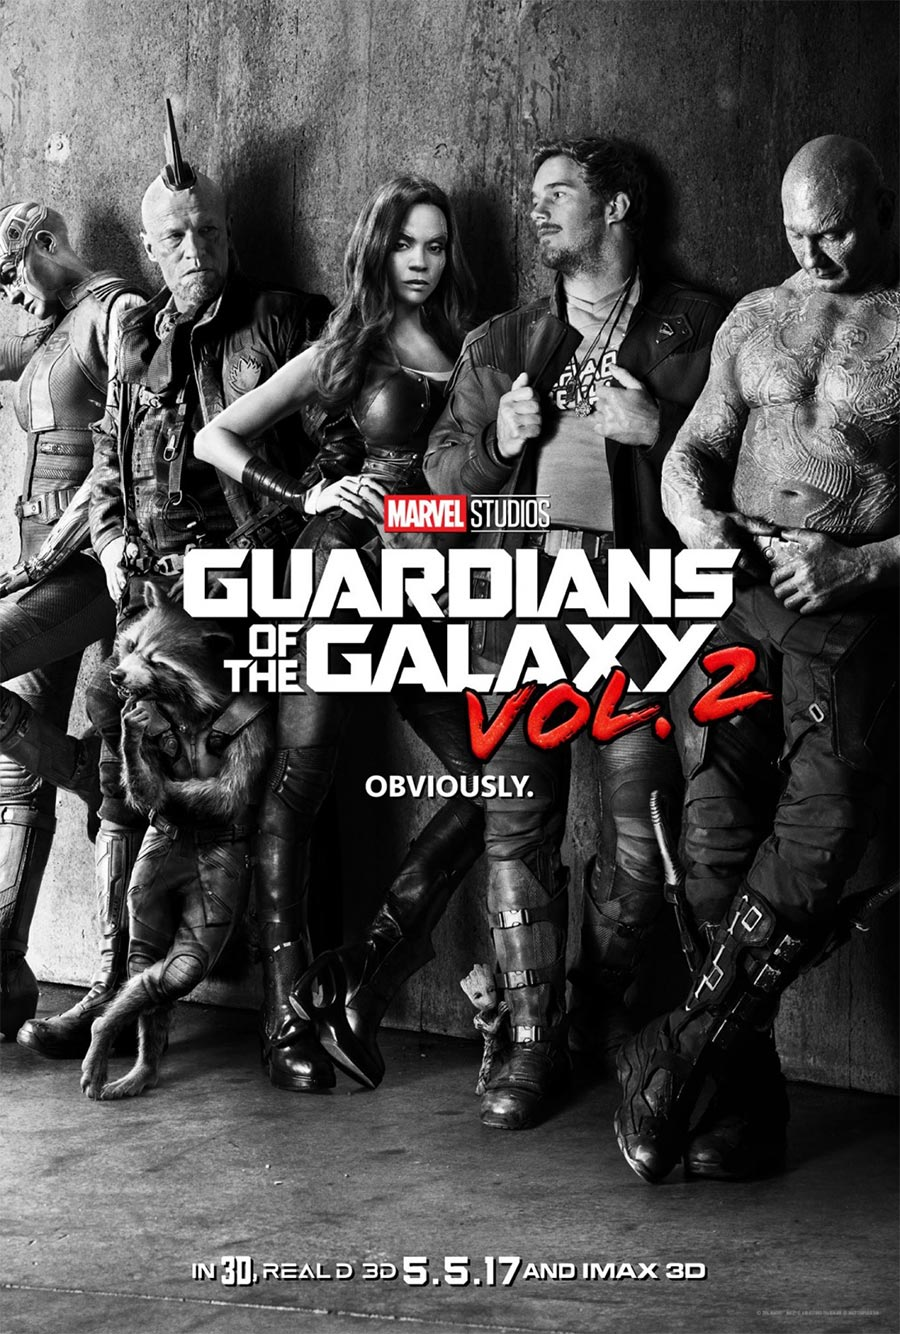 Guardians Of The Galaxy Vol. 2 Teaser-Trailer guardians-of-the-galaxy-vol-2-poster